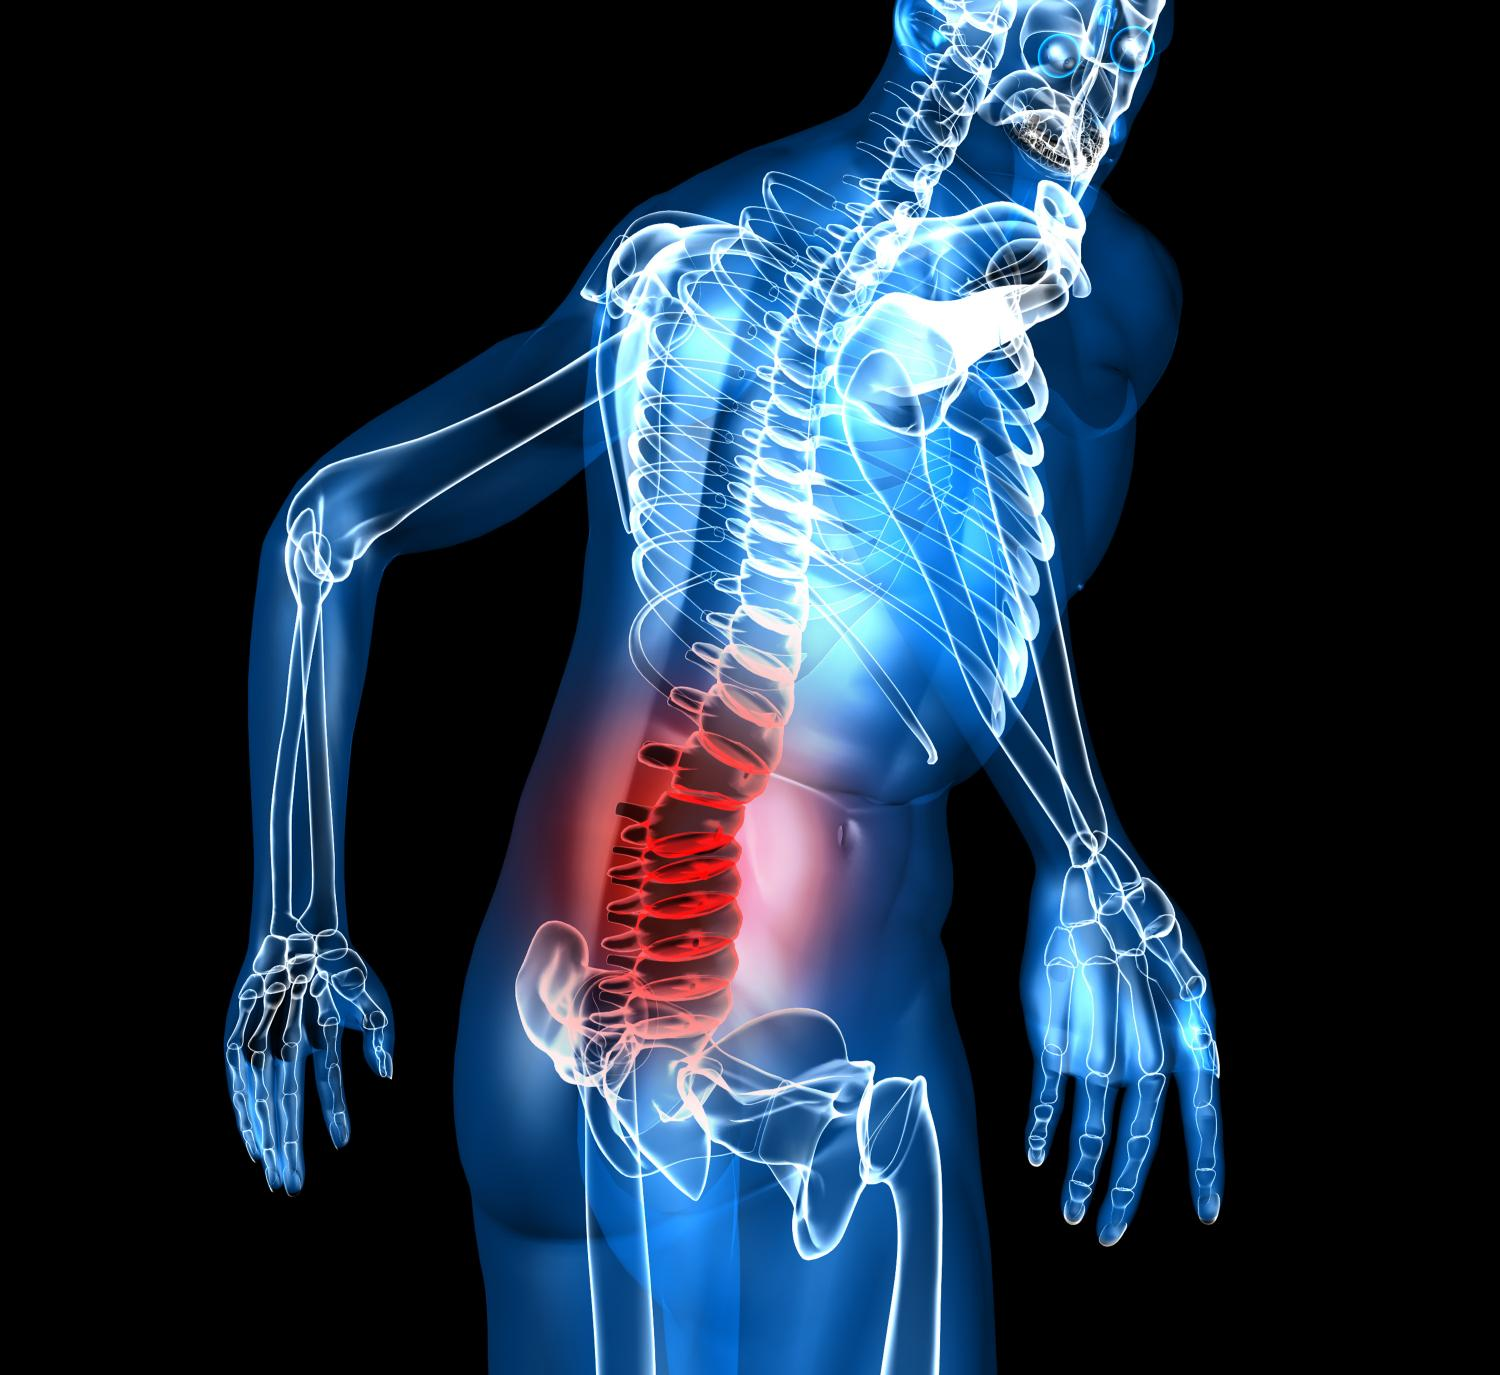 Placebo And Valium Are Equally Effective For Acute Lower Back Pain